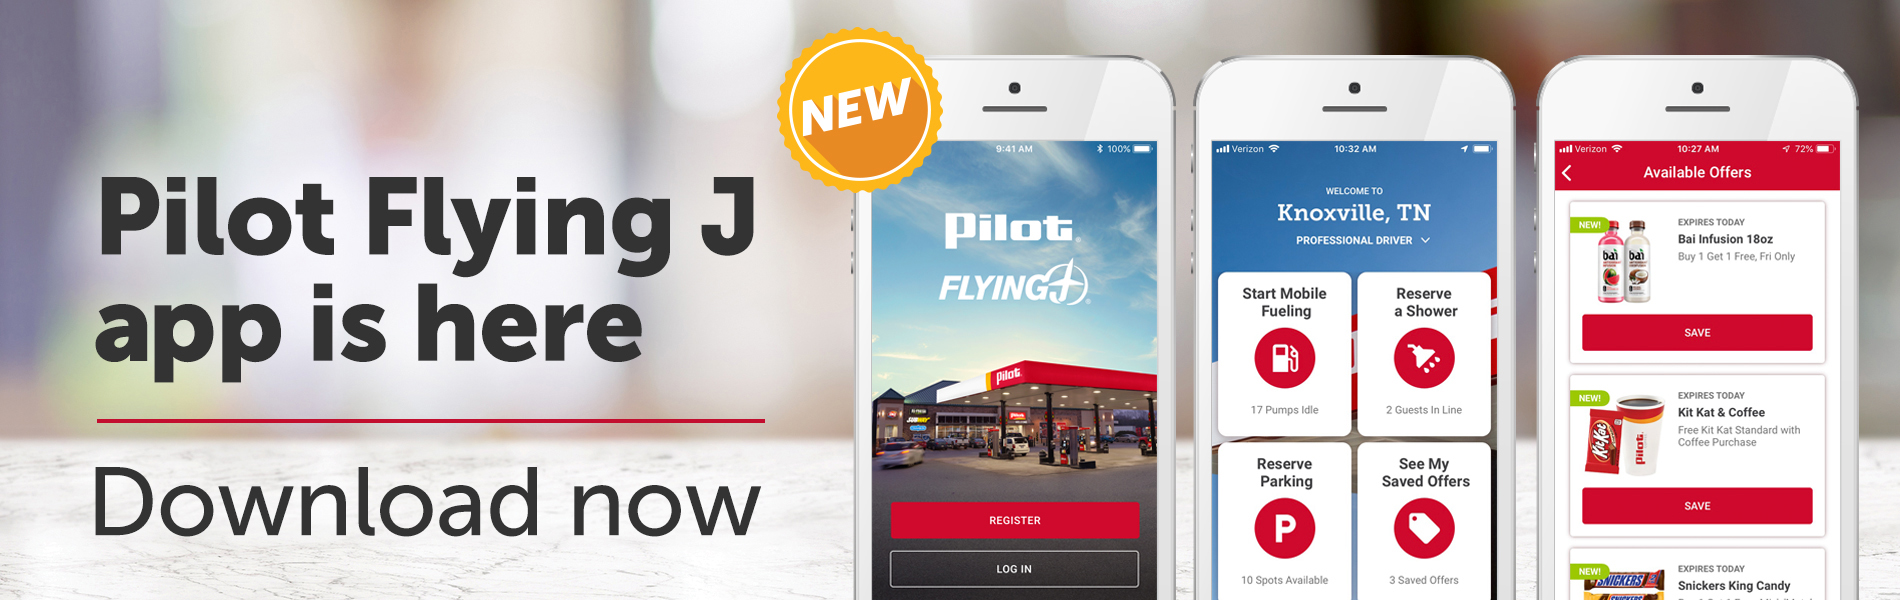 Pilot Flying J app displayed on mobile devices. Text reads: Pilot Flying J app is here. Download now.